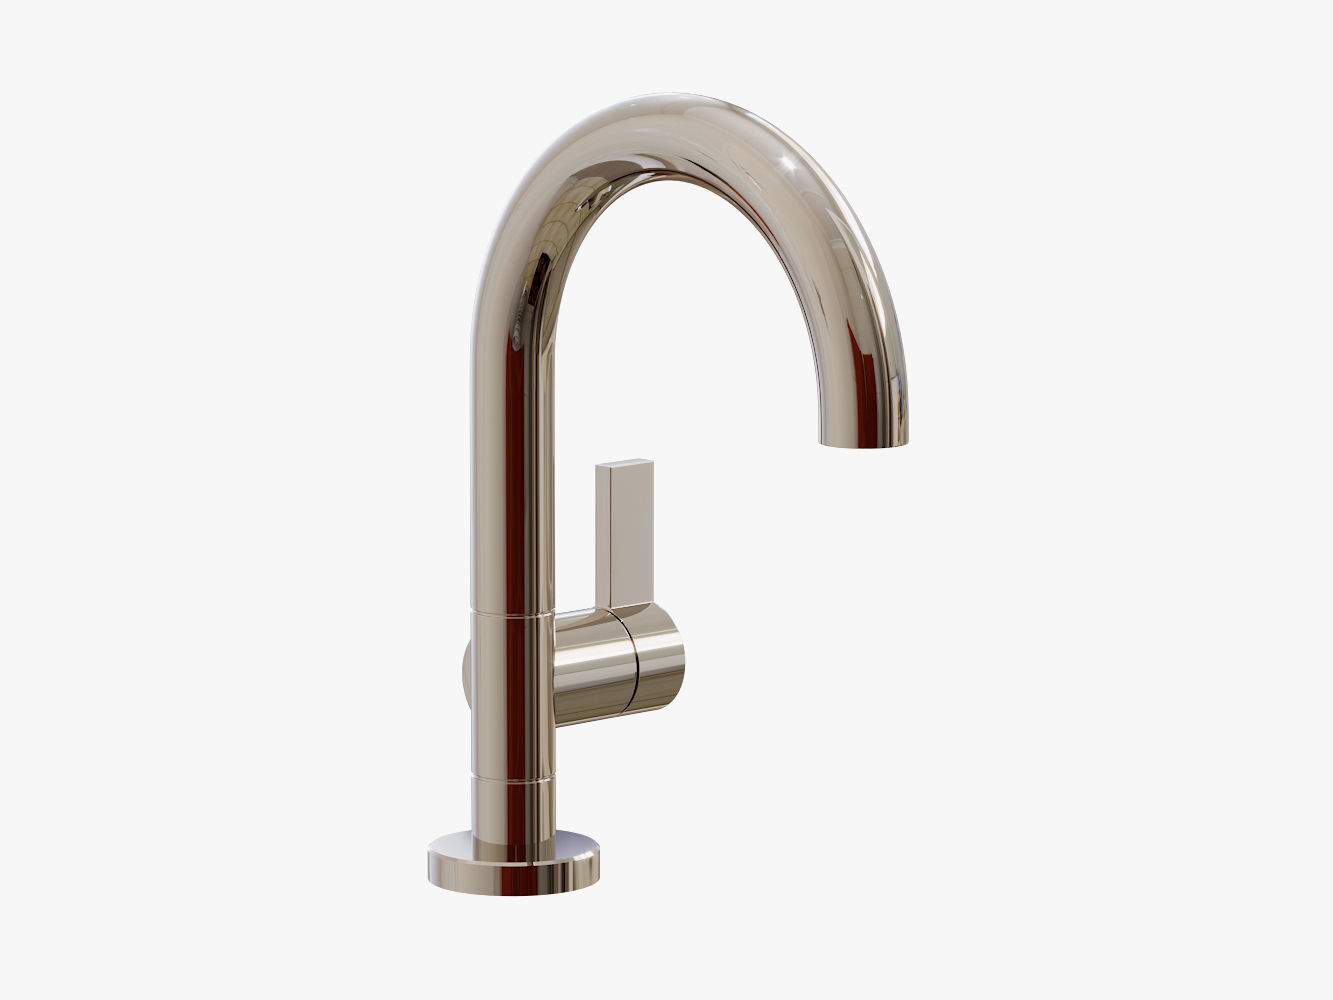 3D Kallista - One Single-Control Sink Faucet - P24409-00